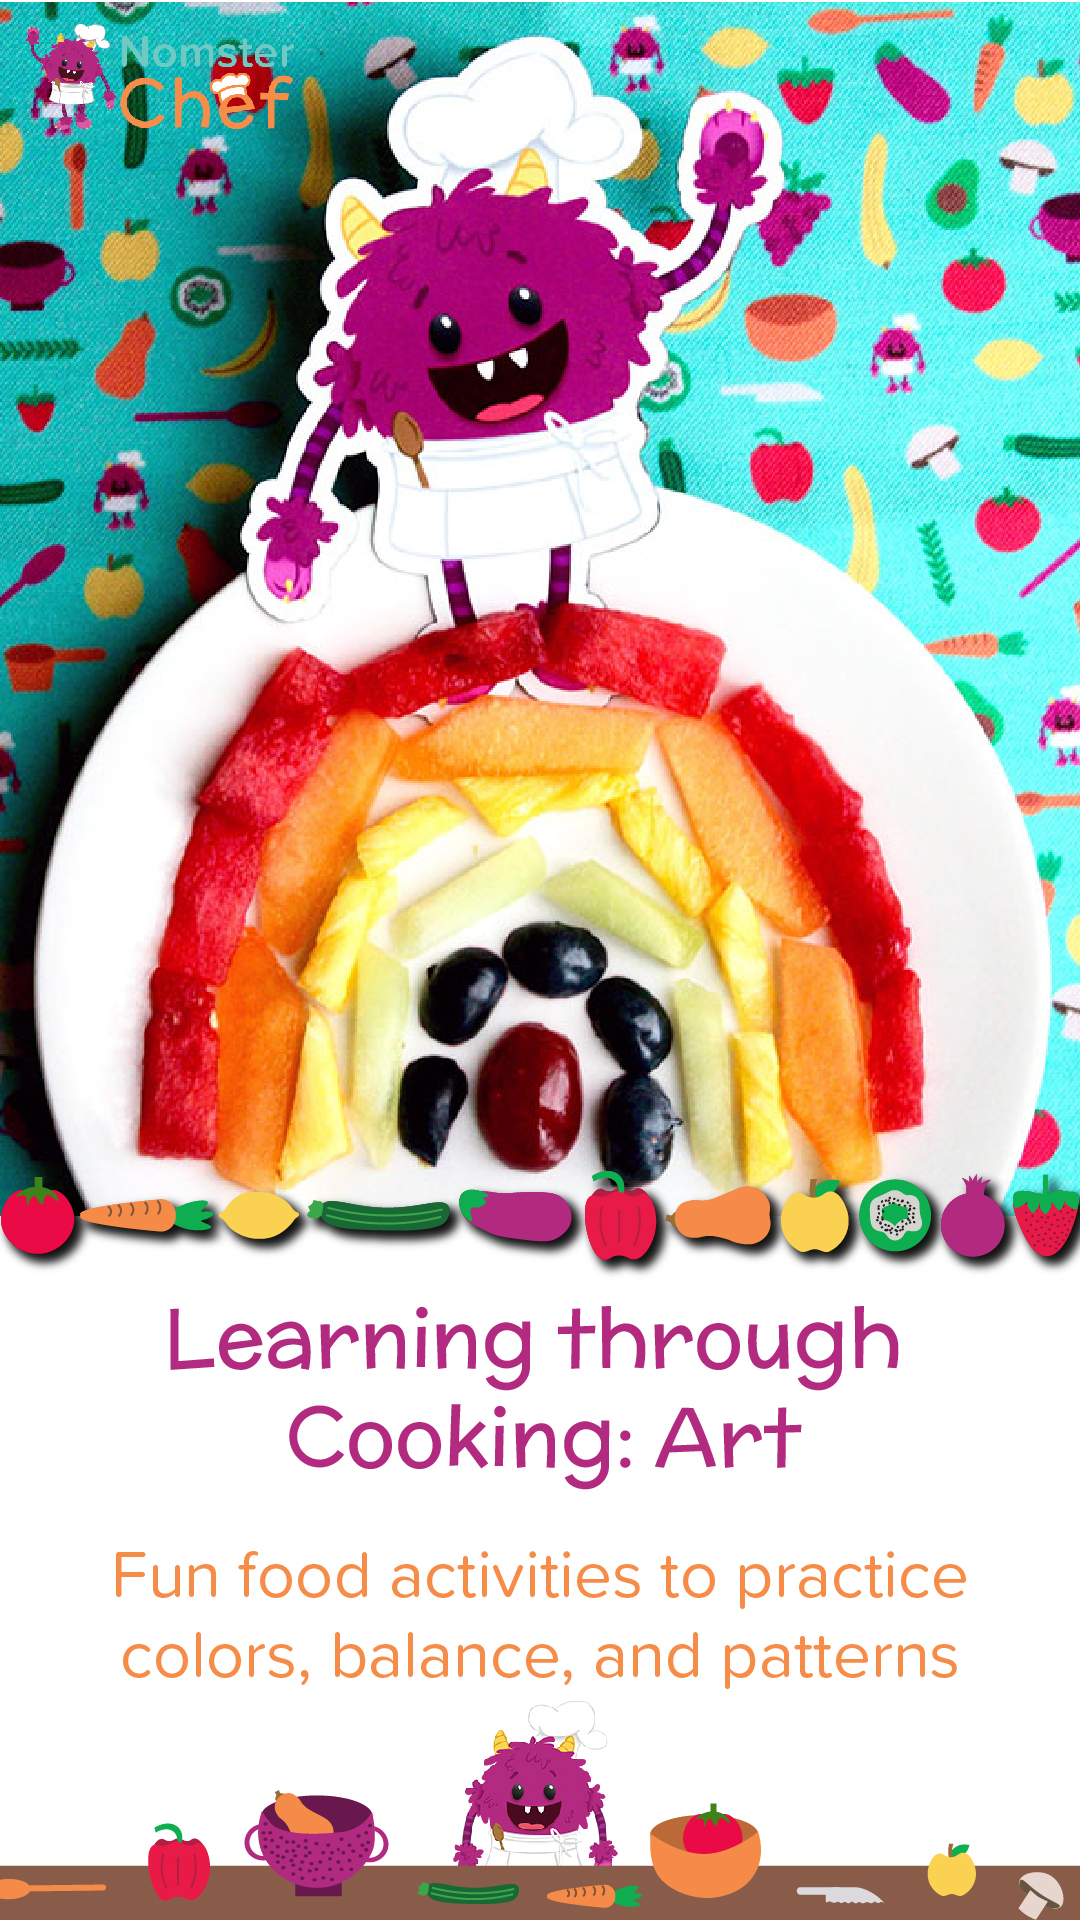 Nomster Chef Learning Through Cooking Art Fun Food Recipes